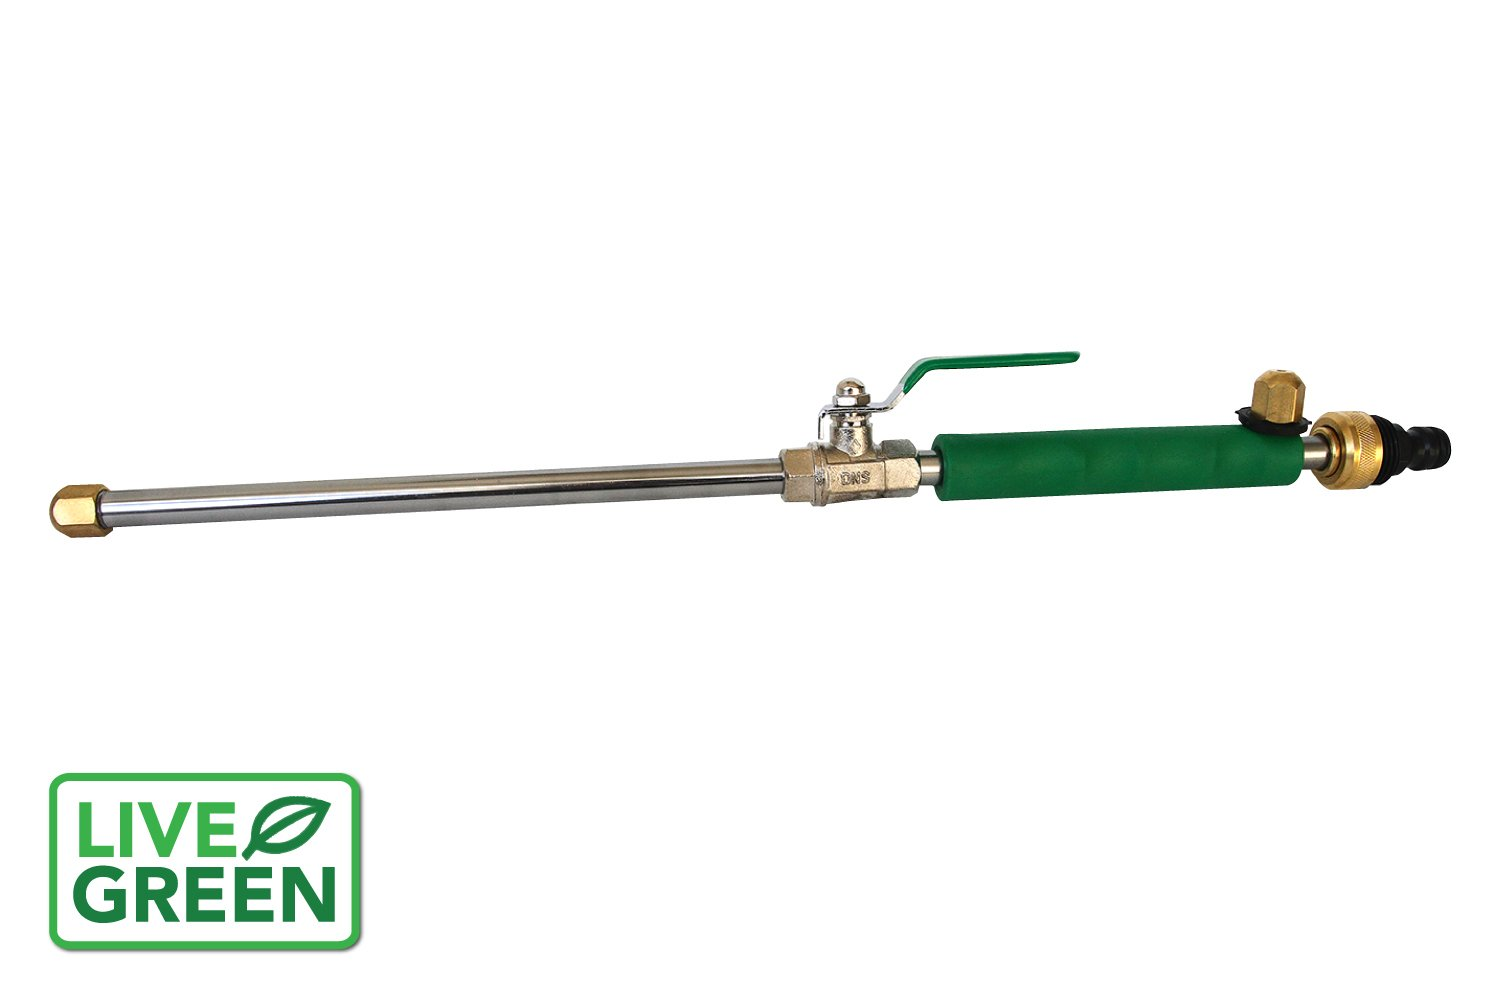 Live Green All Pressure Power Nozzle Perfect for Washing Cars, Patio's, Sidewalks, Siding and Garage | Pressure Spray Nozzle | Turbo Jet Spray | Full Customer Warranty